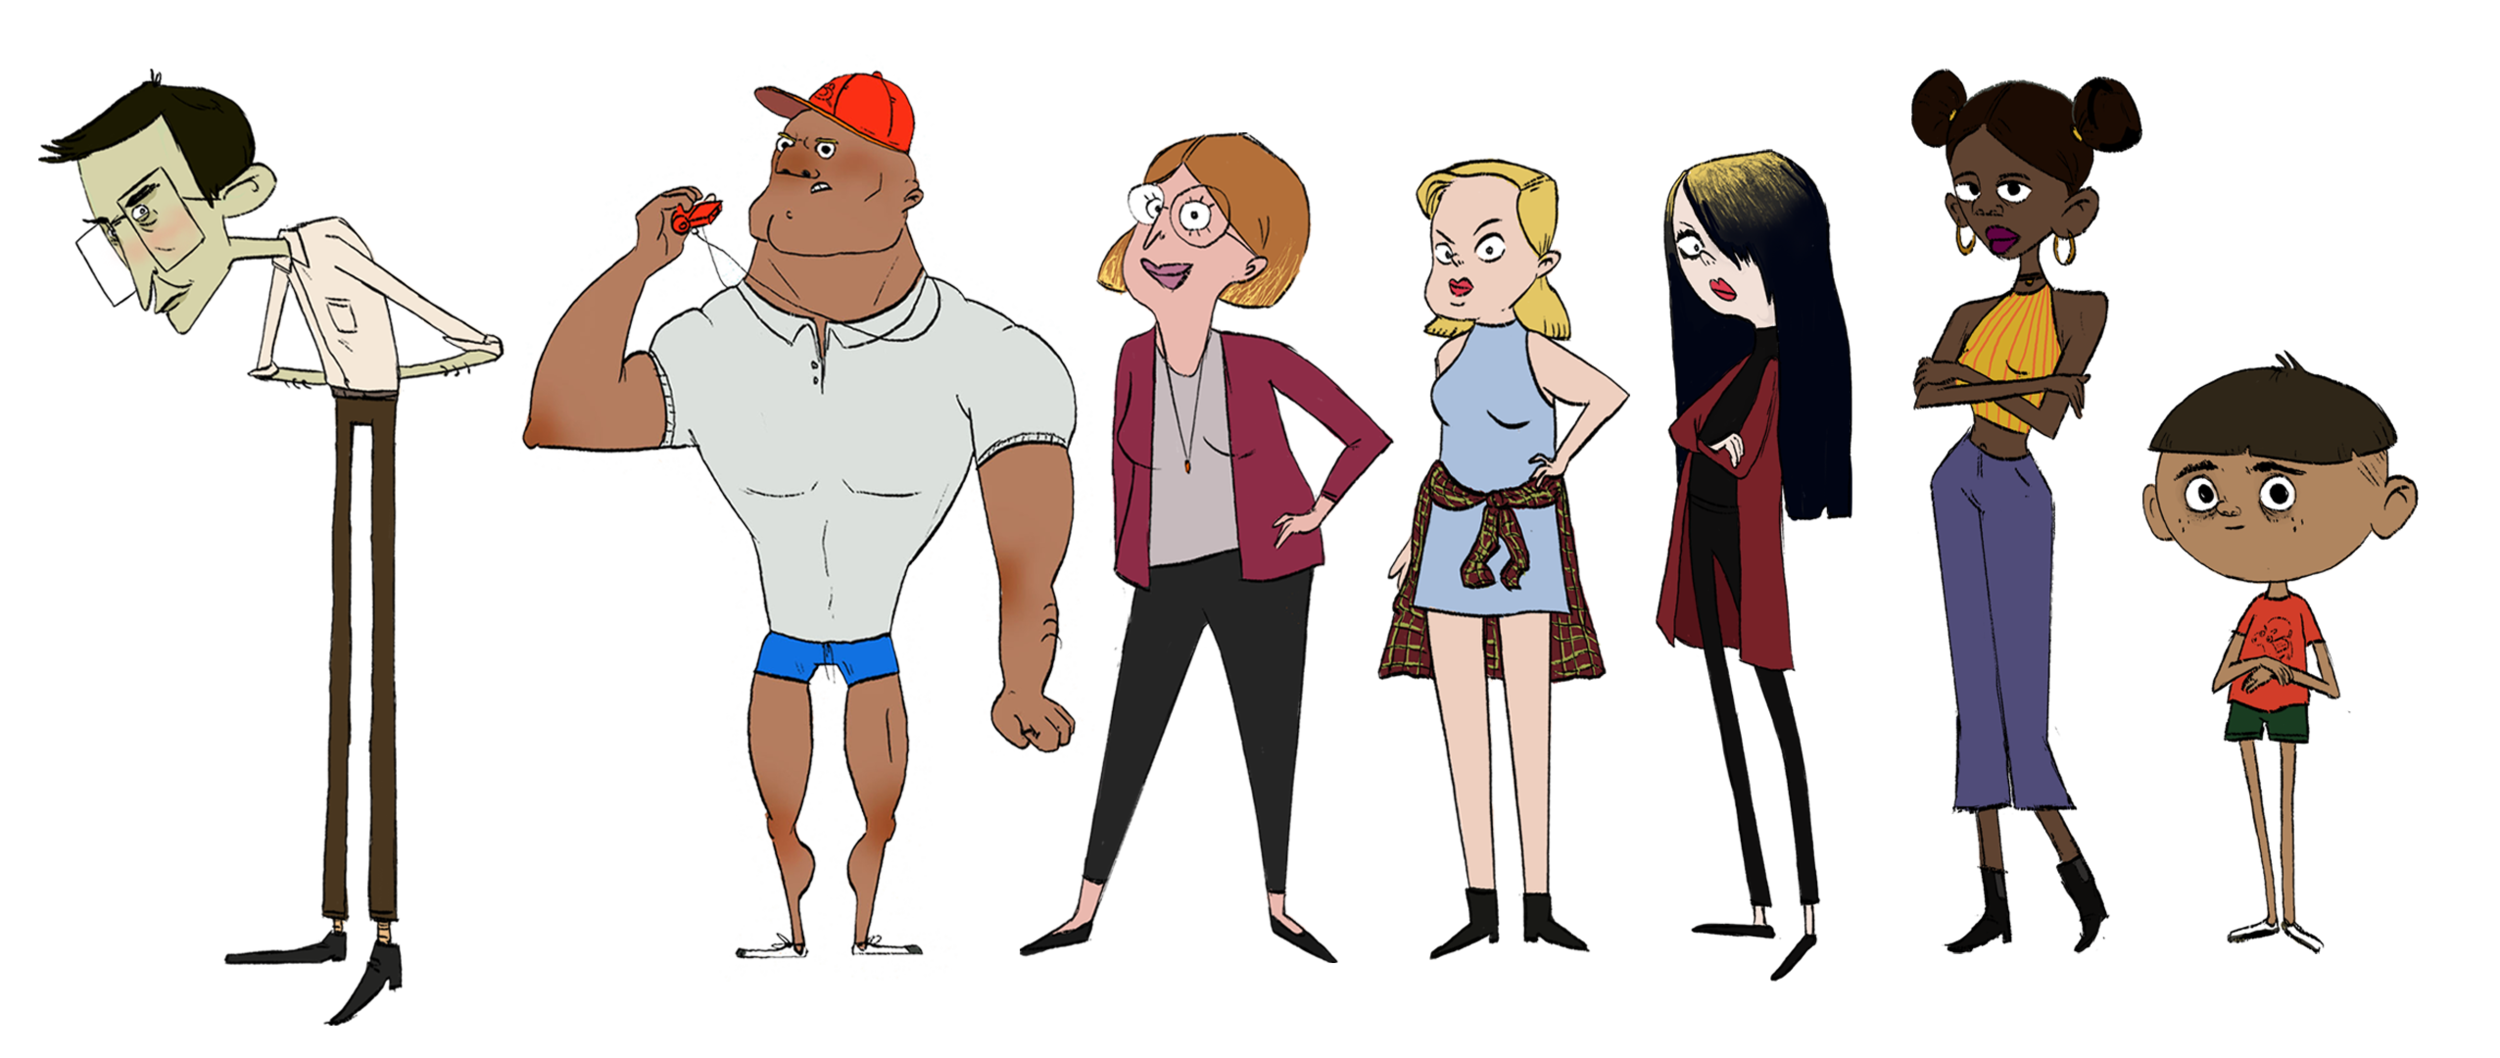 The rest of the cast of characters